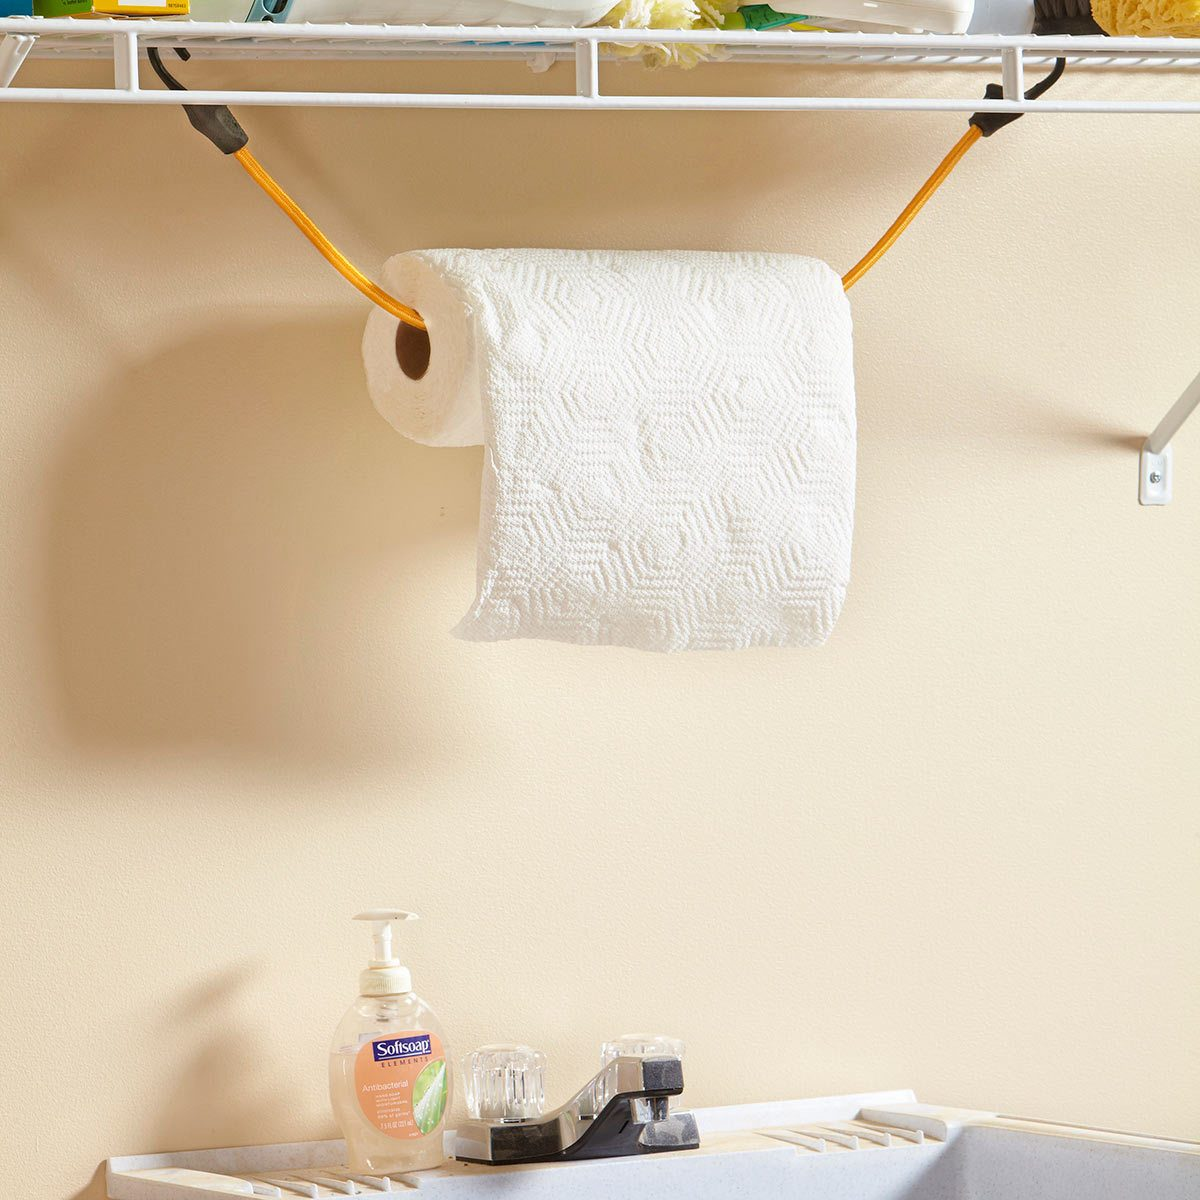 Under-Shelf Paper Towel Holder